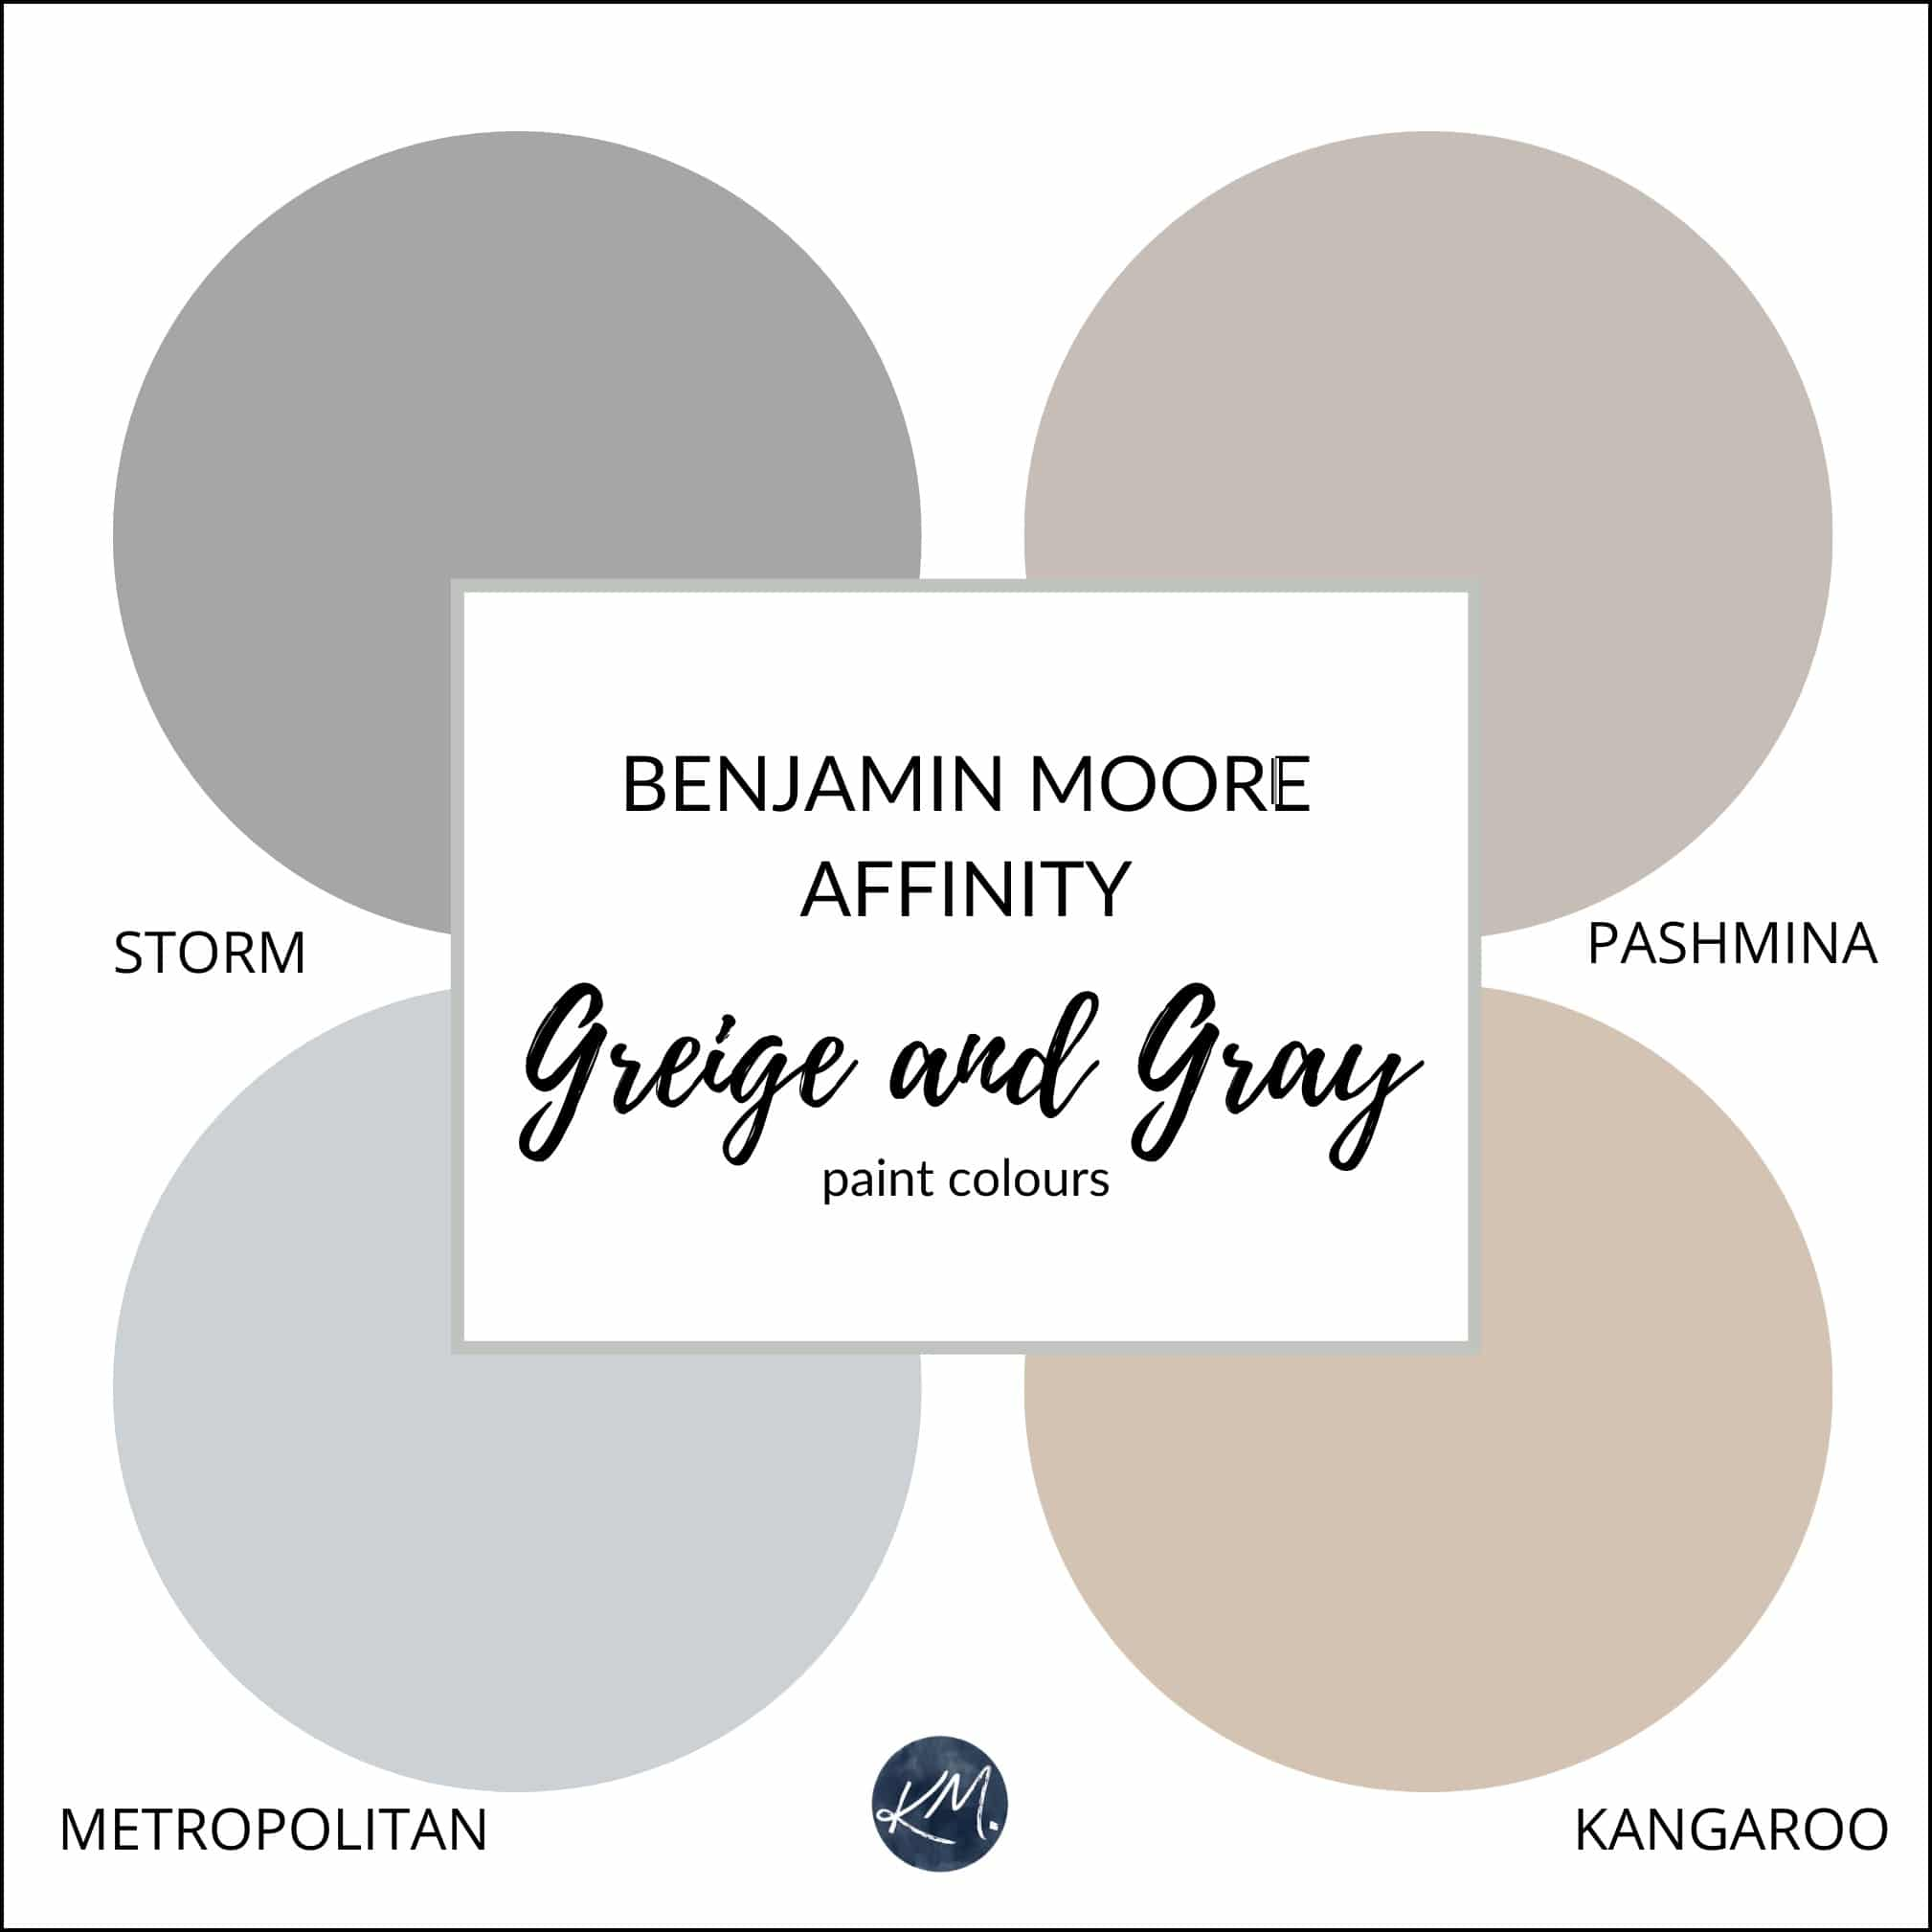 Benjamin Moore Affinity The Best Neutral Beige Greige Gray Paint Colours